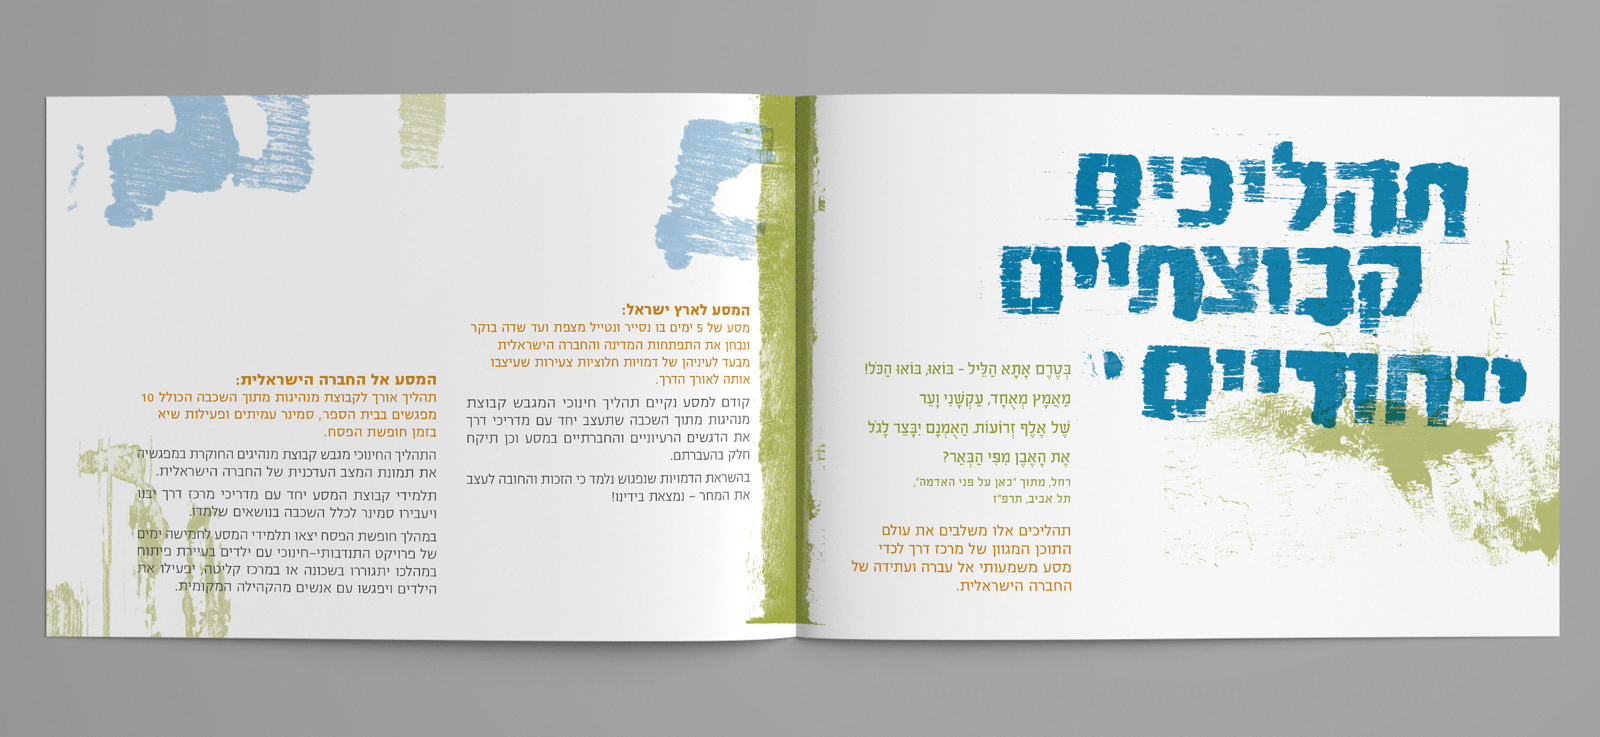 https://bigeyes.co.il/wp-content/uploads/2019/06/derech-2009-3.png